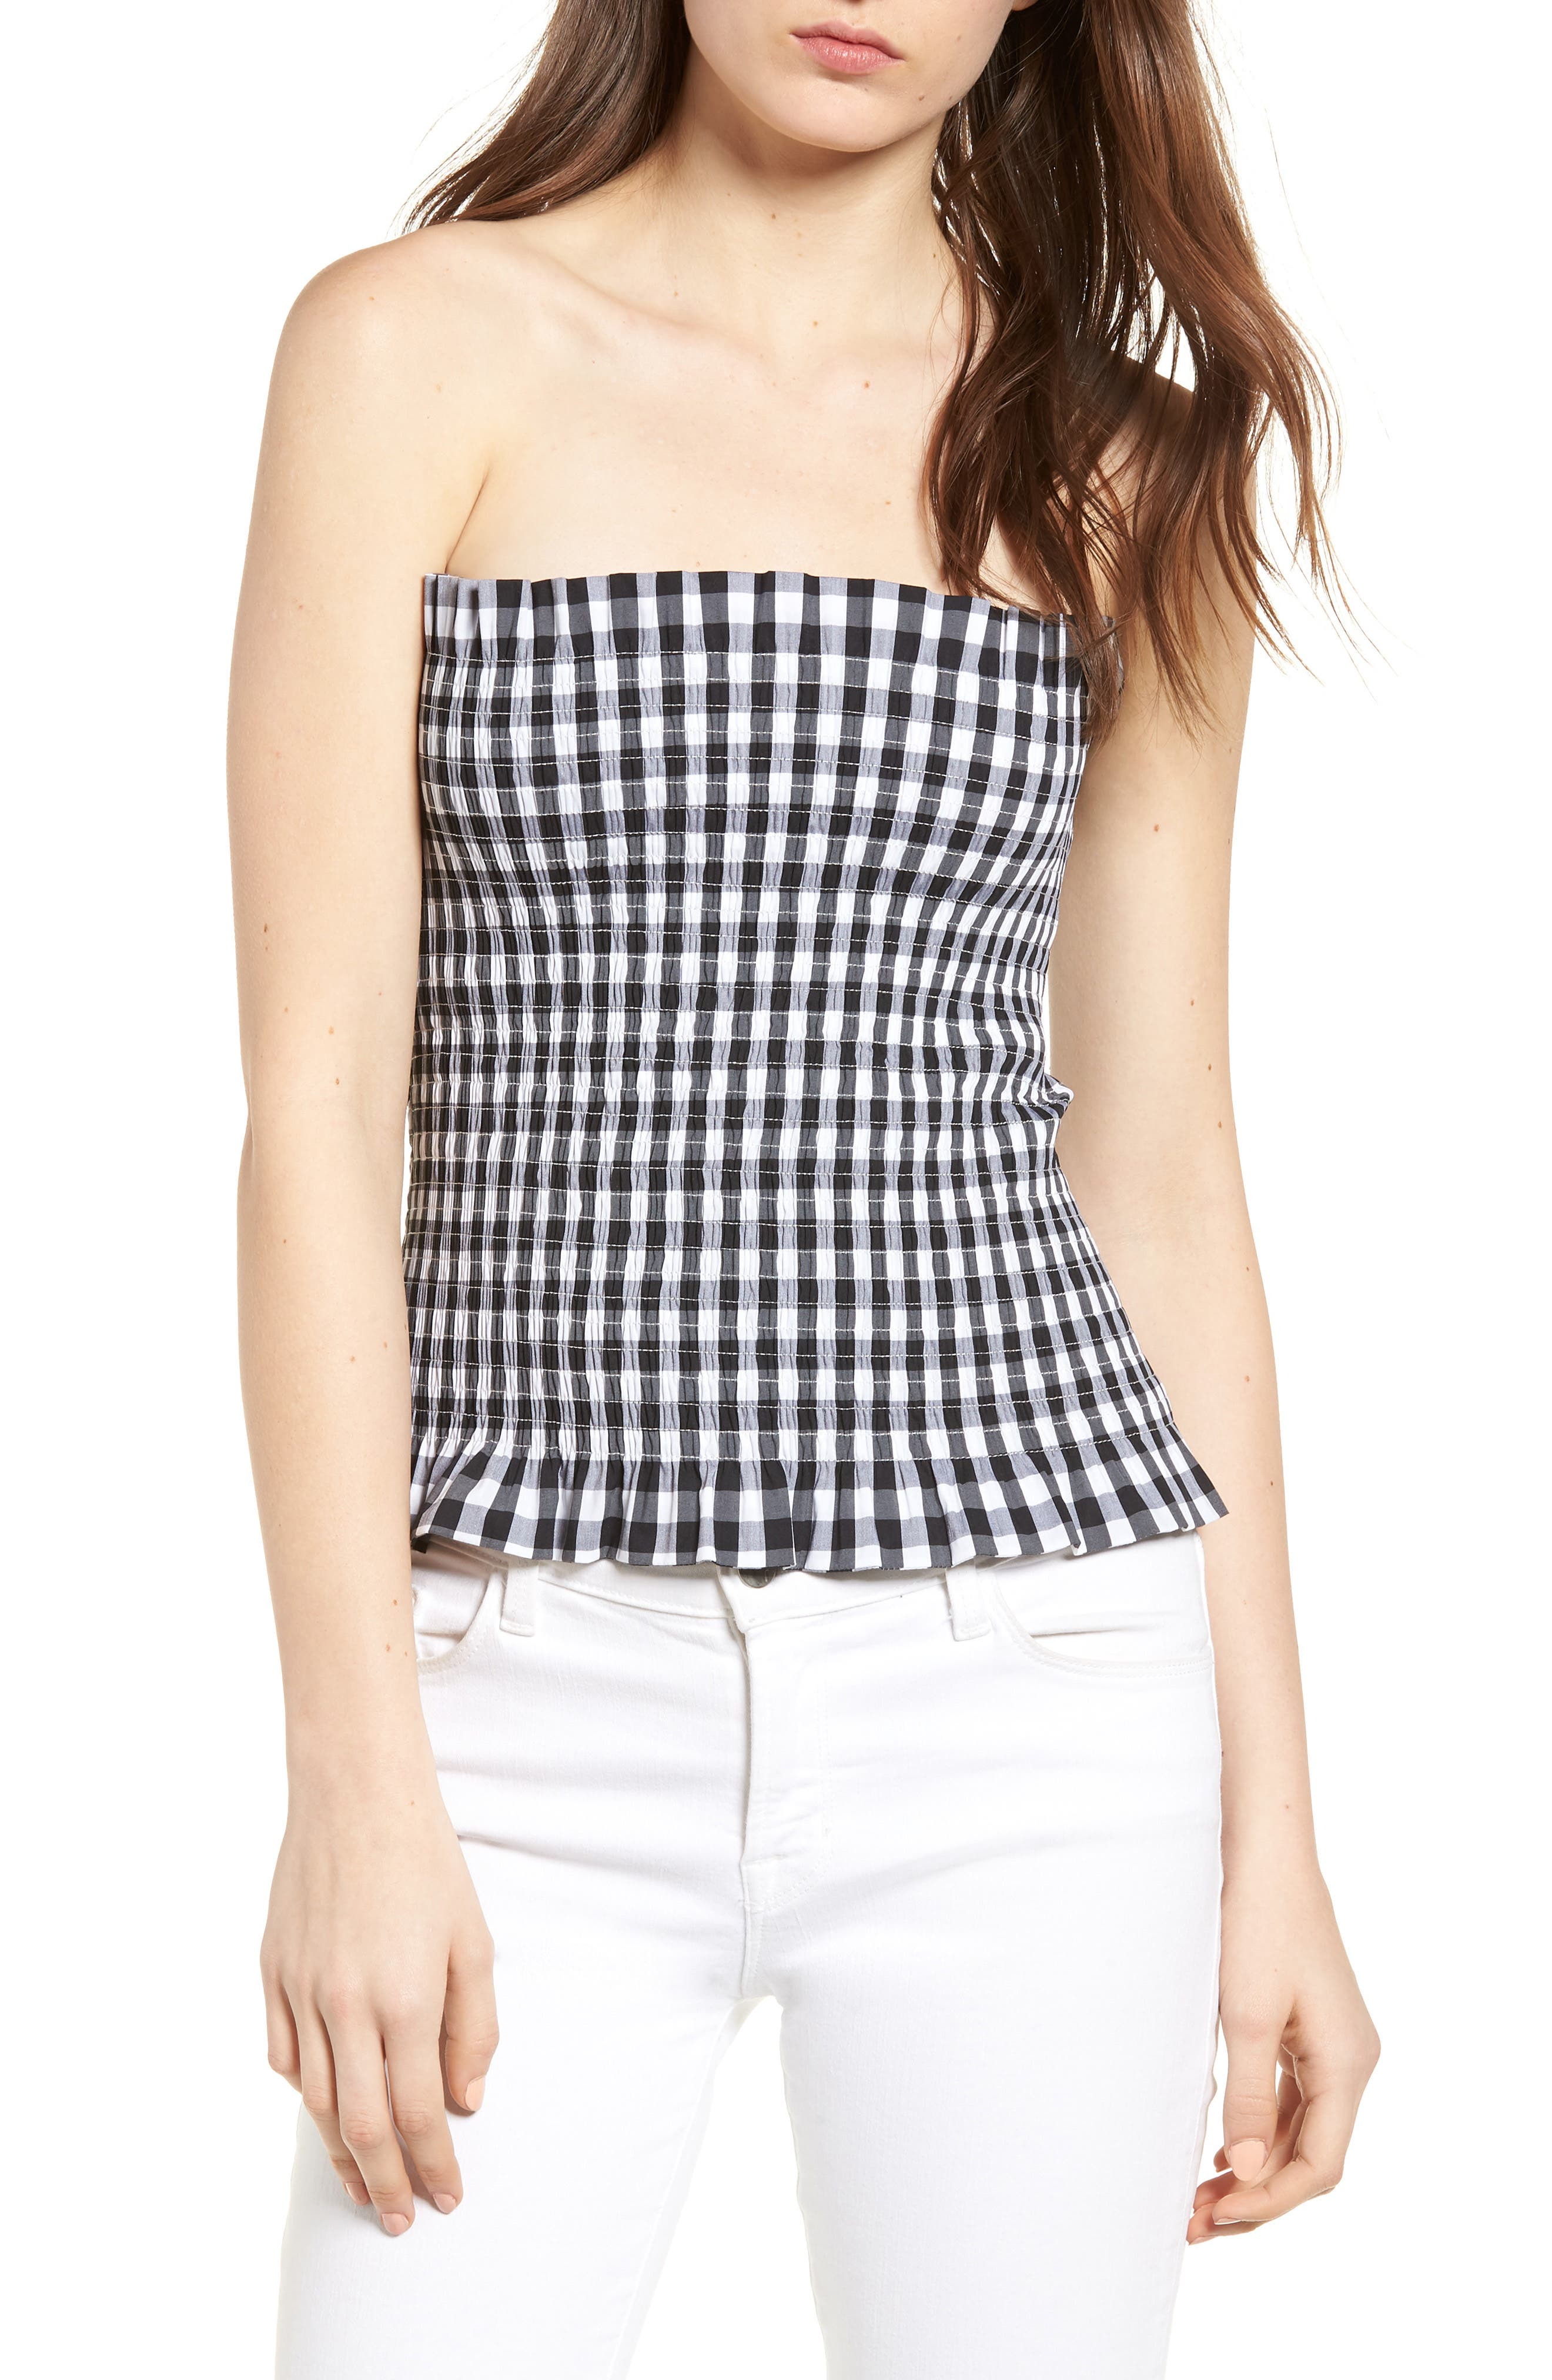 Bishop + Young Gingham Tube Top,                             Main thumbnail 1, color,                             Assorted